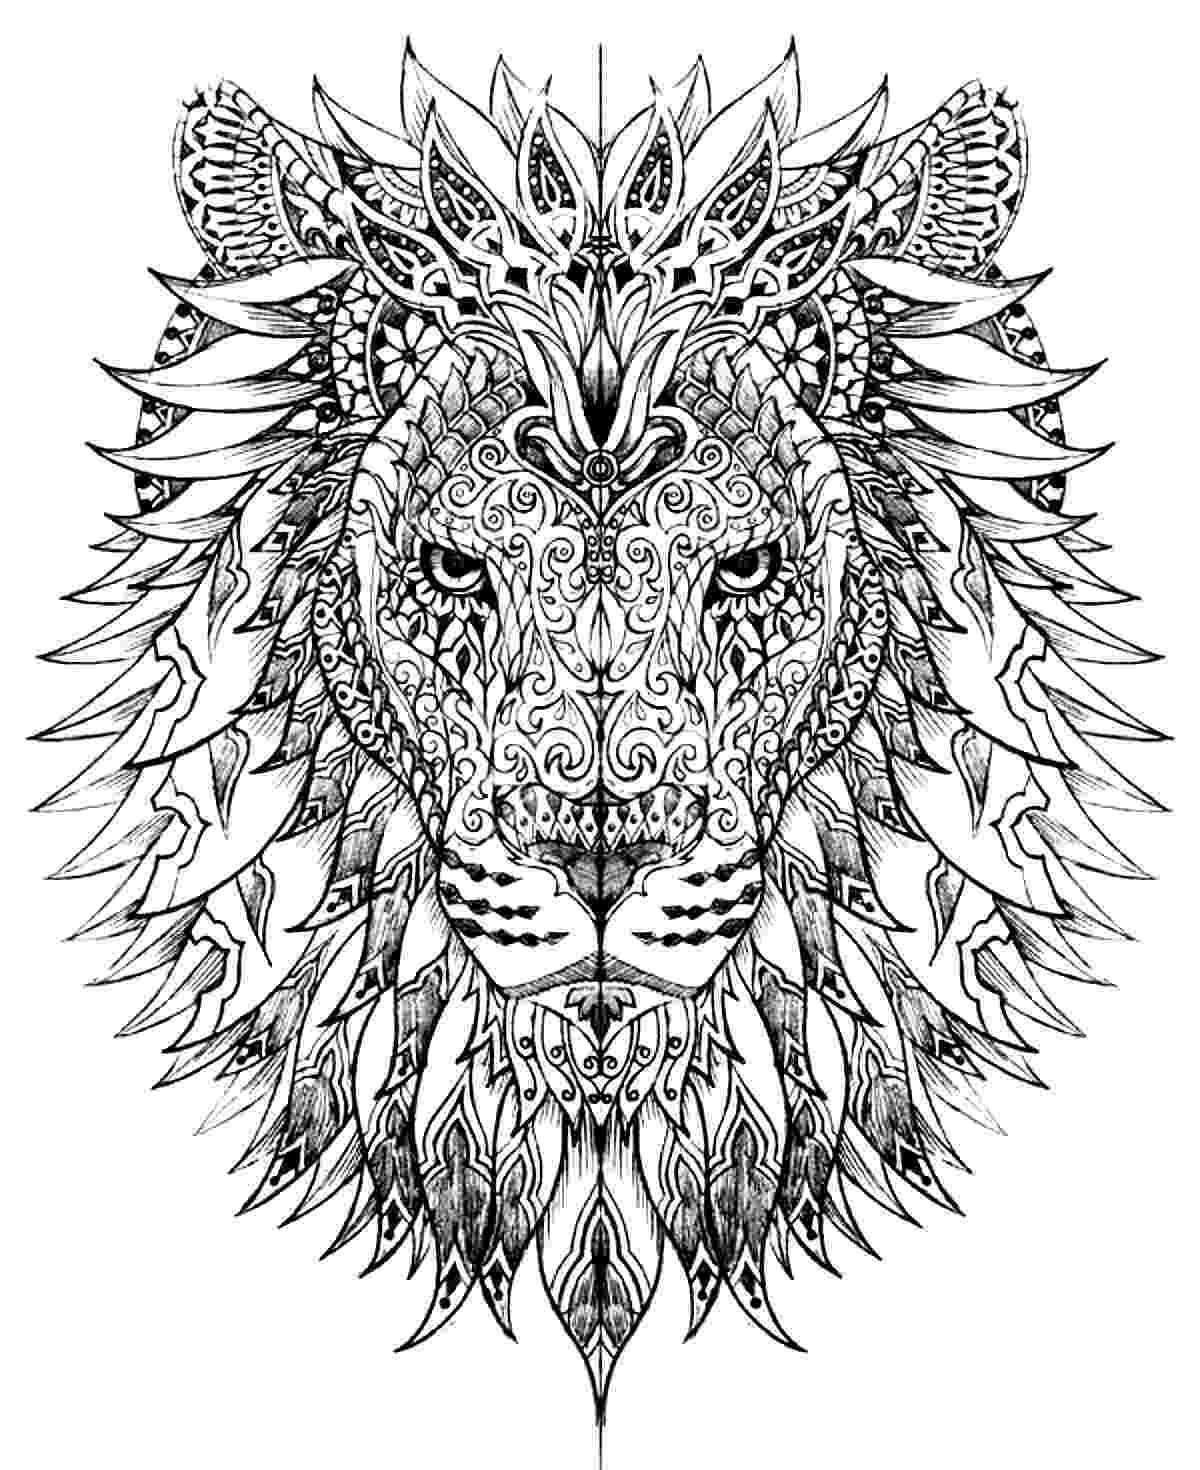 hard animal coloring pages coloring pages for adults difficult animals 44 coloring coloring animal hard pages